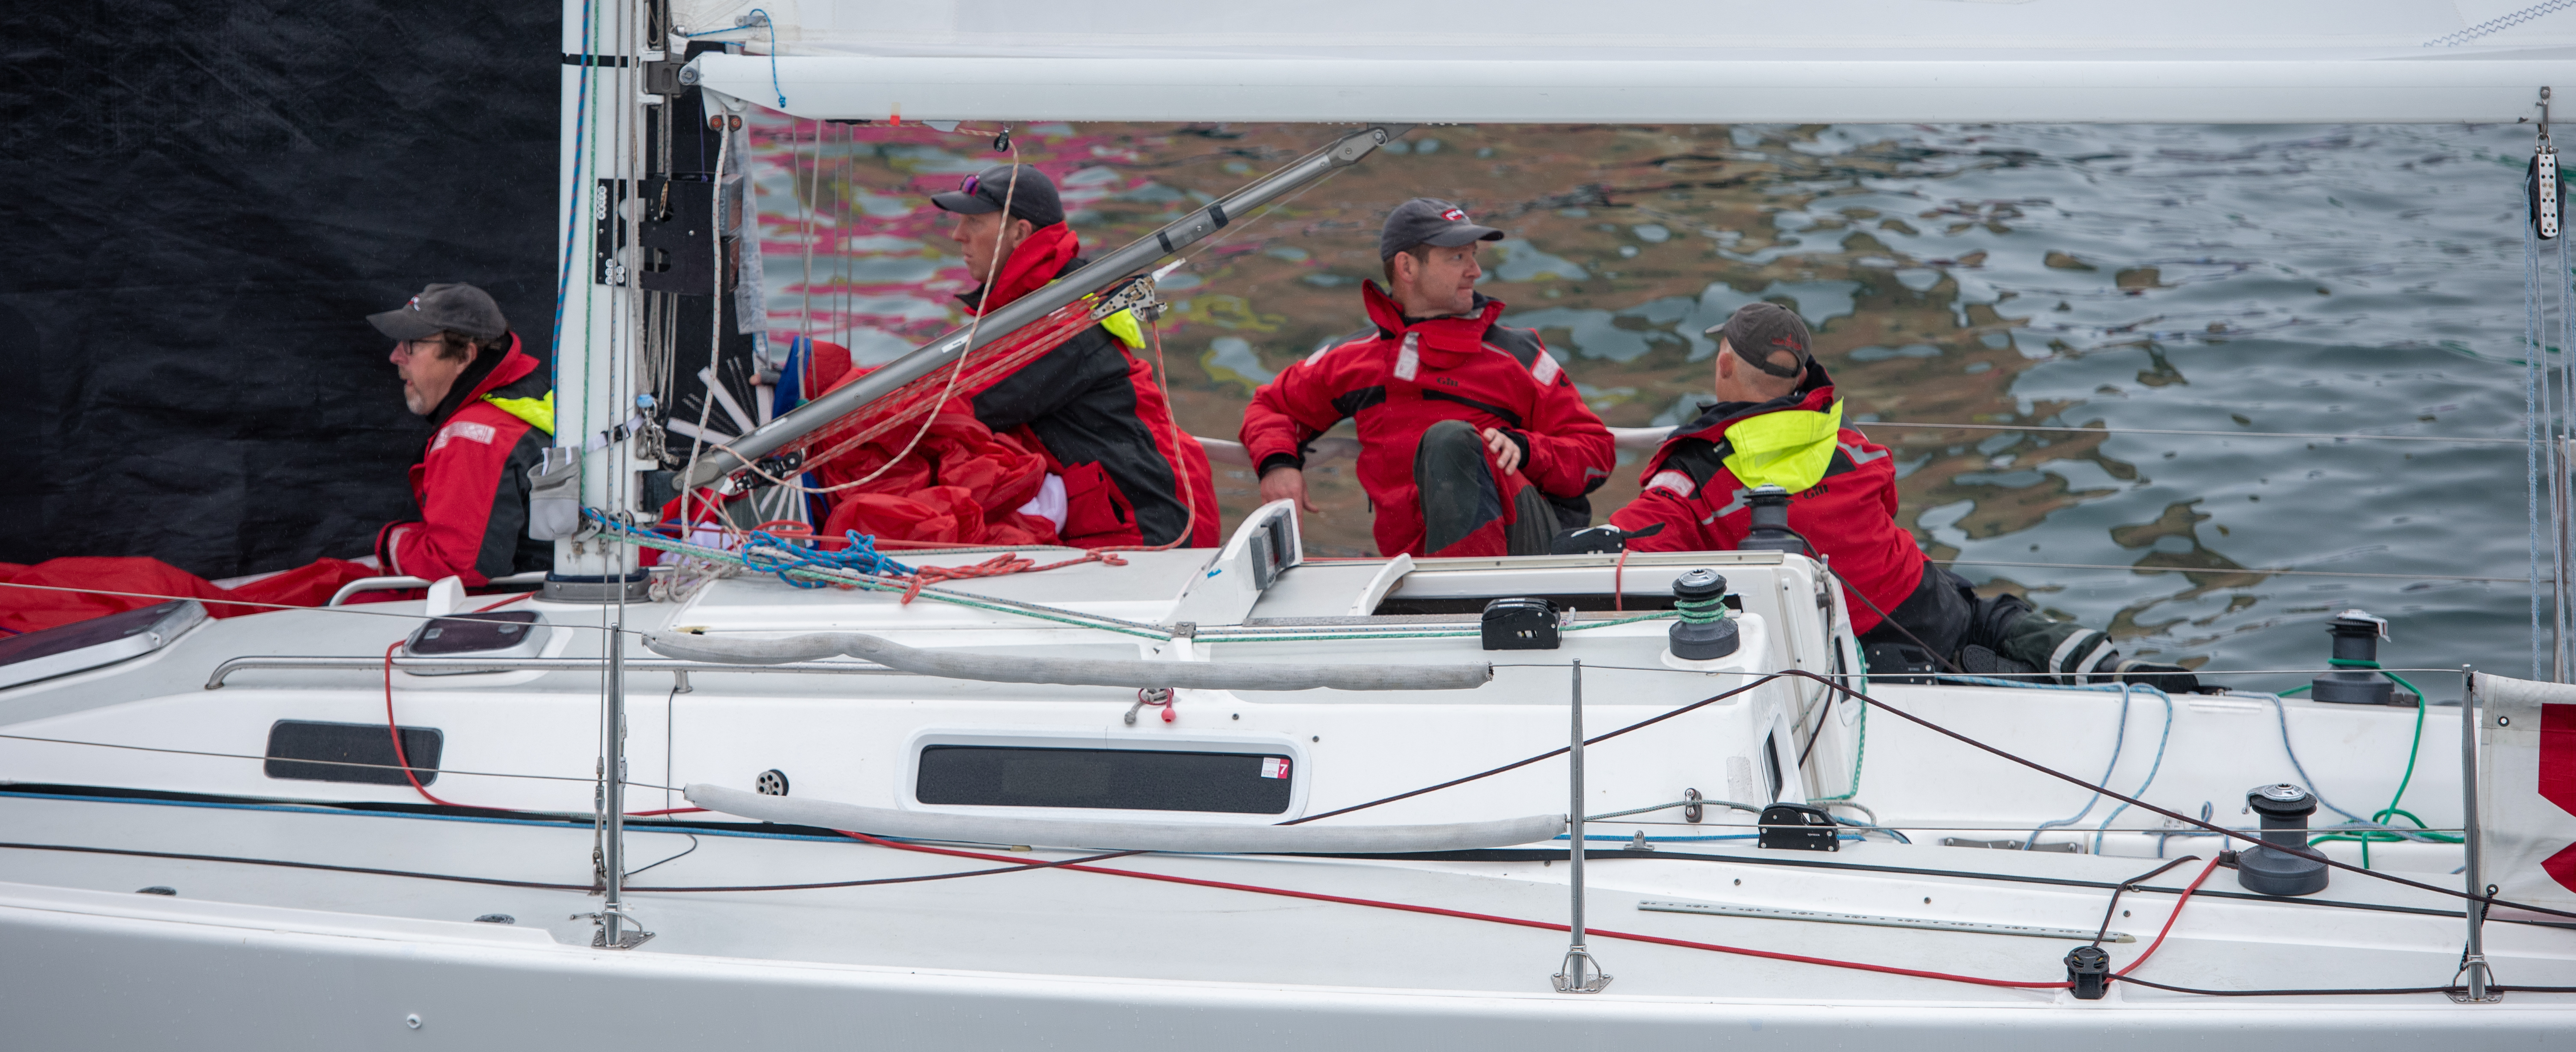 Swiftsure-25-May-2019-RMS-Media-by-Rob-Porter-73